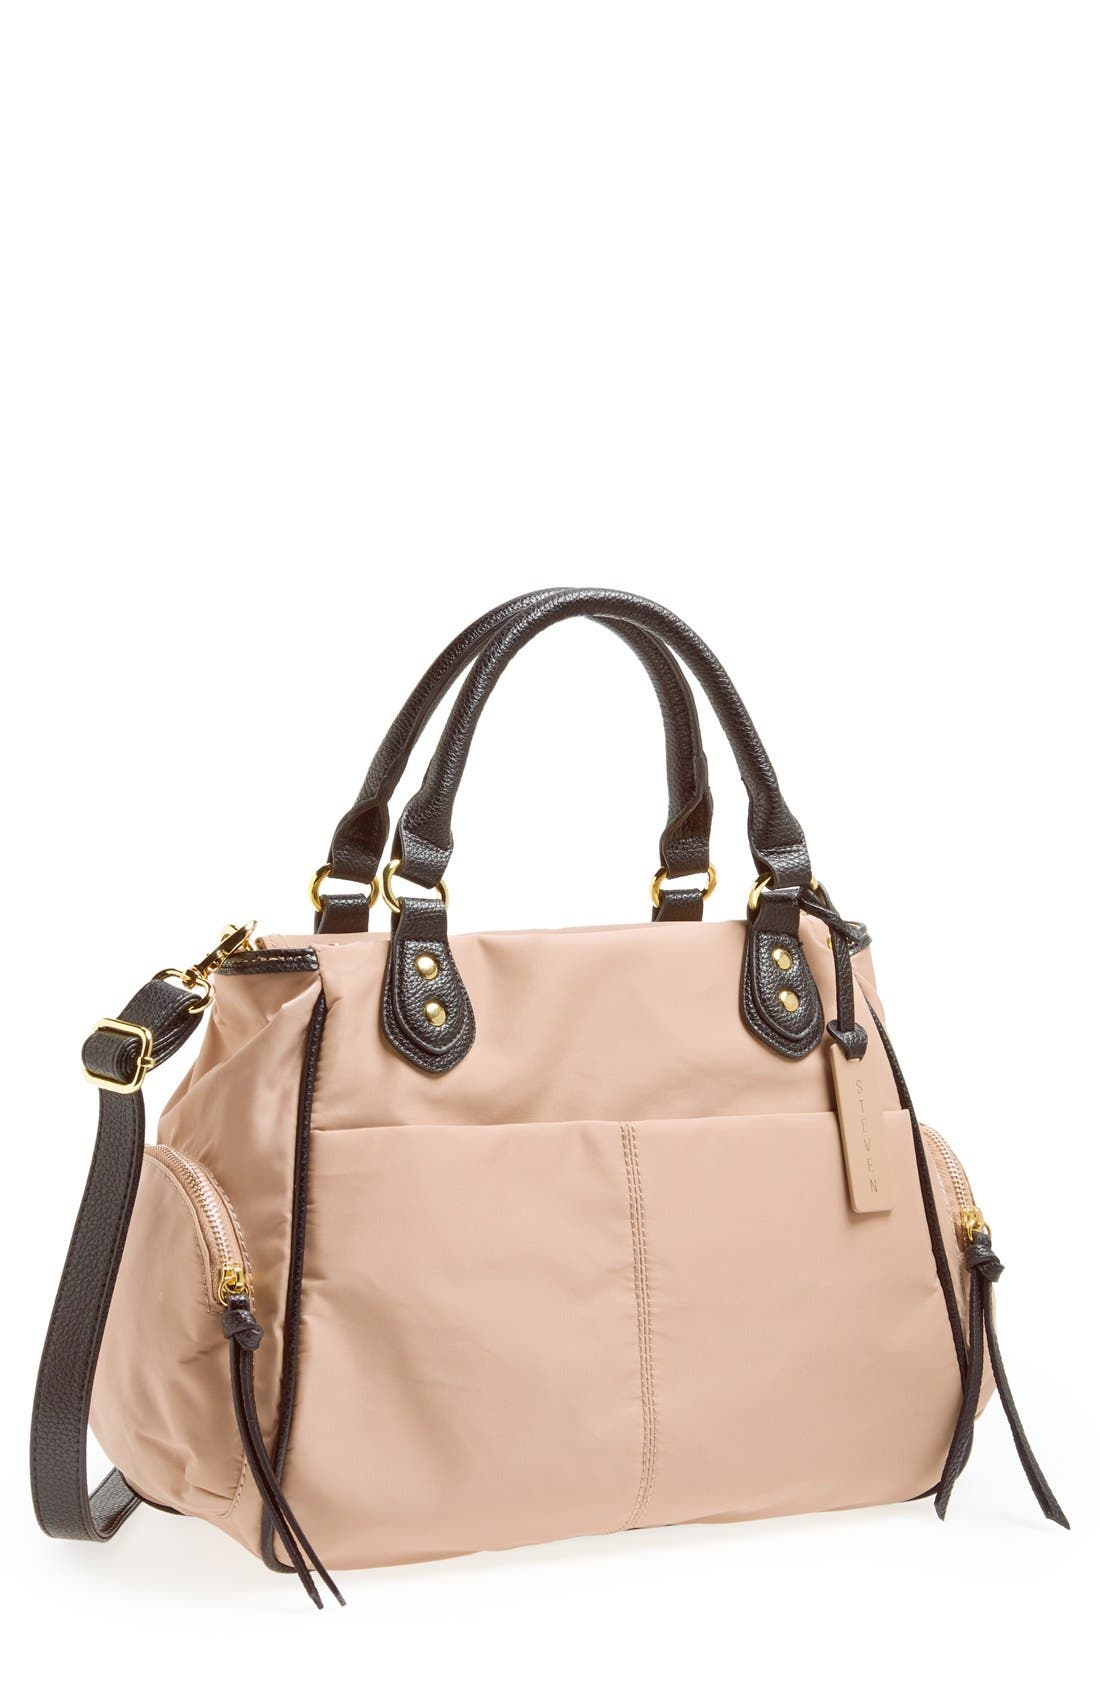 Alternate Image 1 Selected - Steven by Steve Madden 'Hallie' Satchel